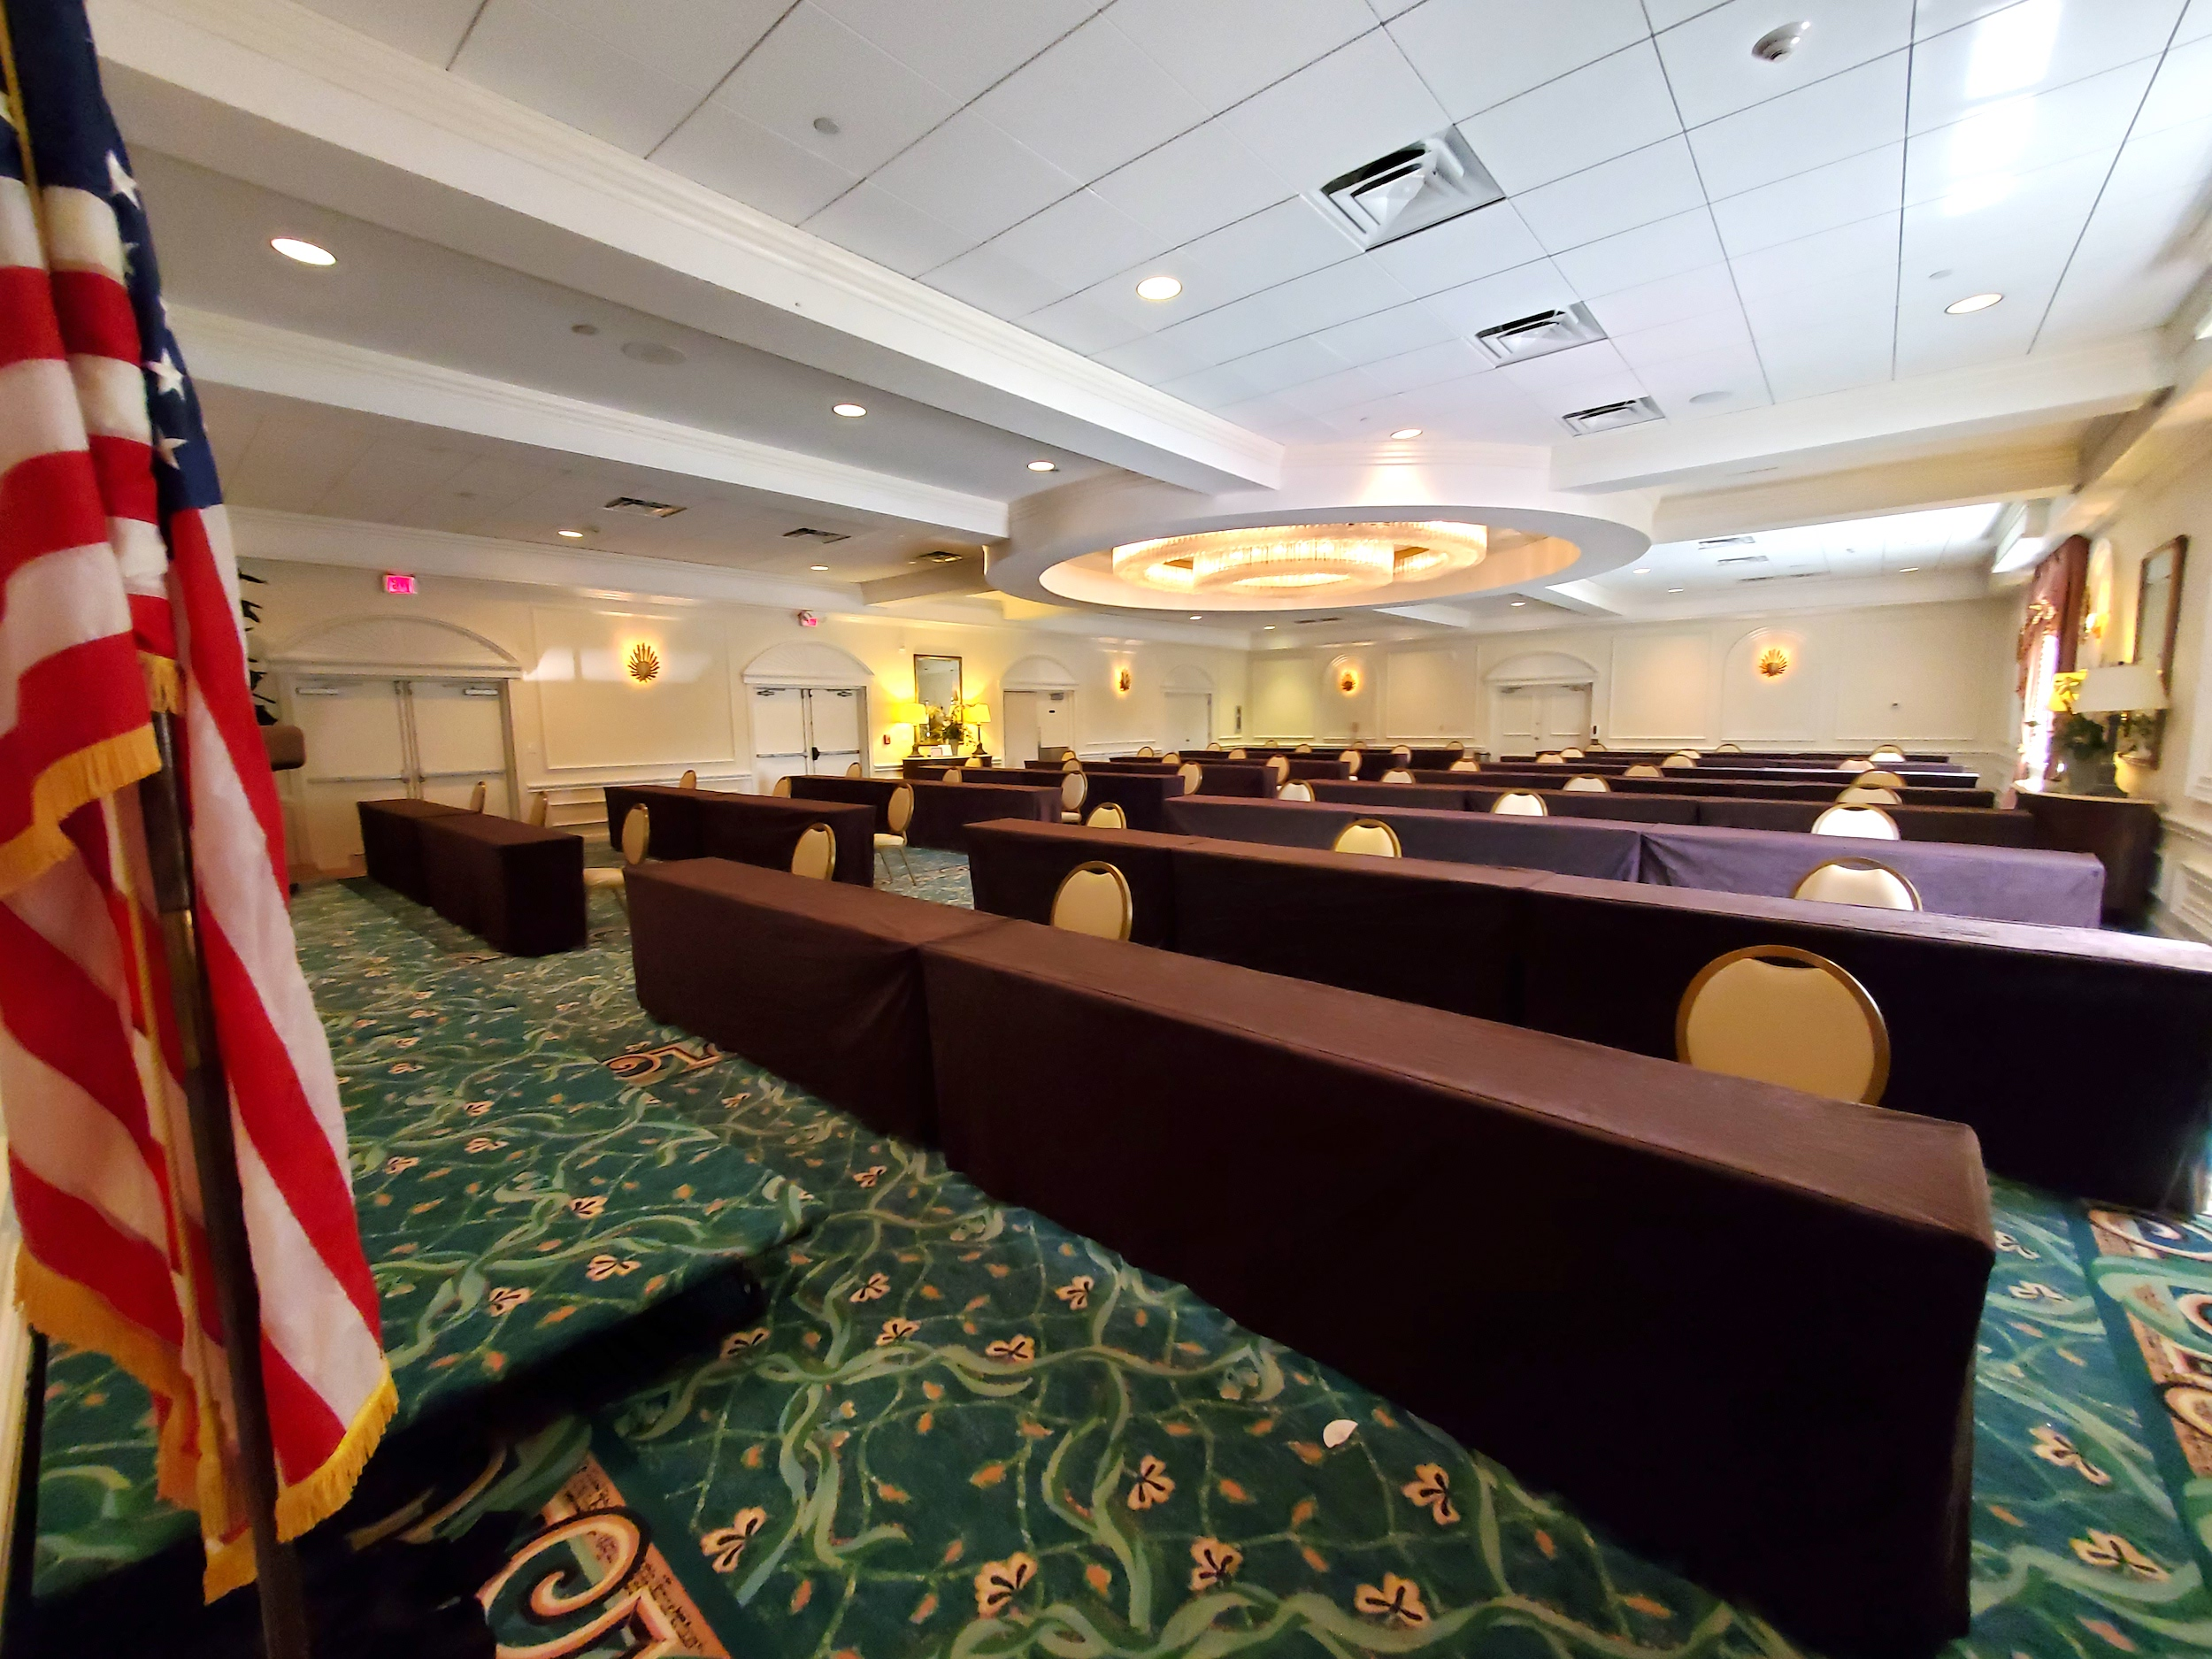 lago mar ballroom conference room updated brown suede